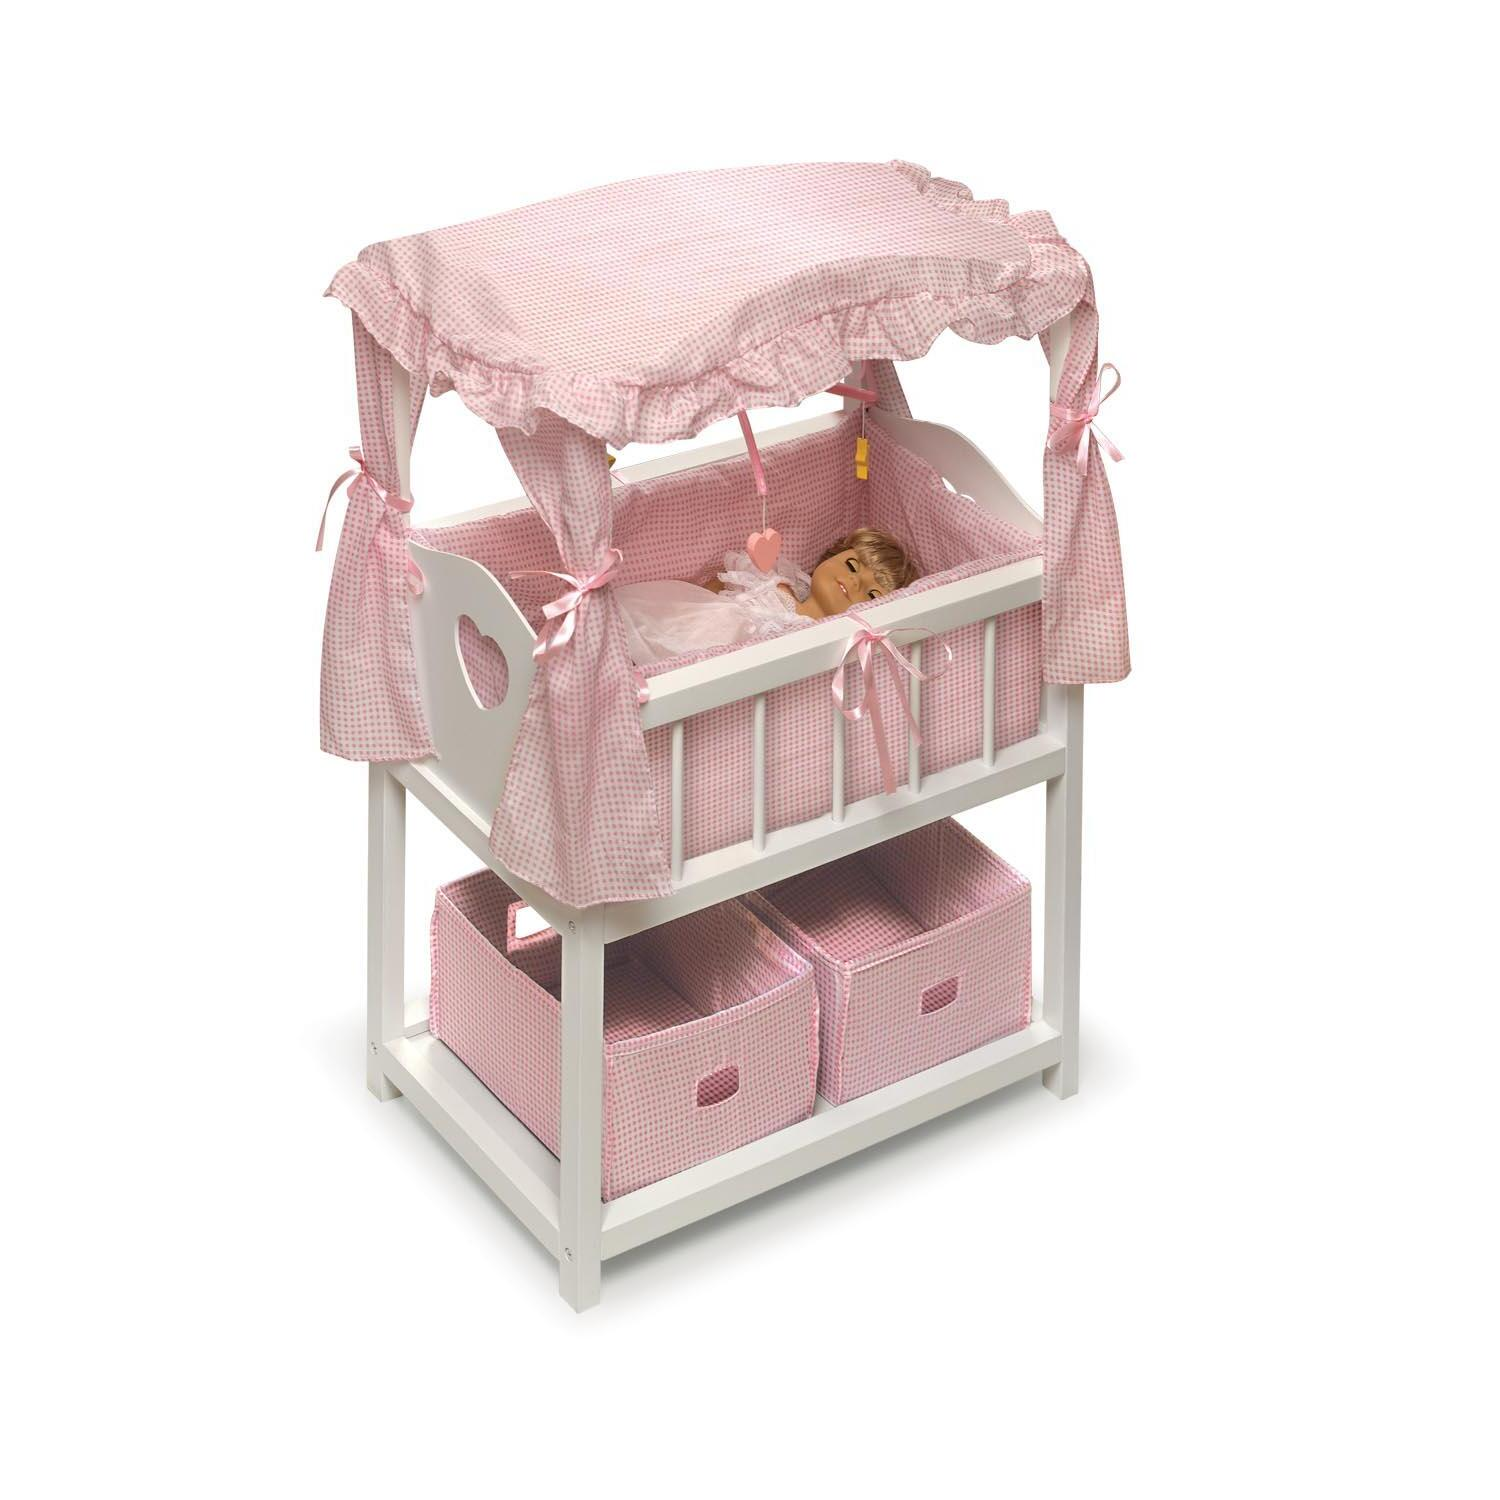 Canopied Doll Crib Furniture Set  From 16299 to 21699